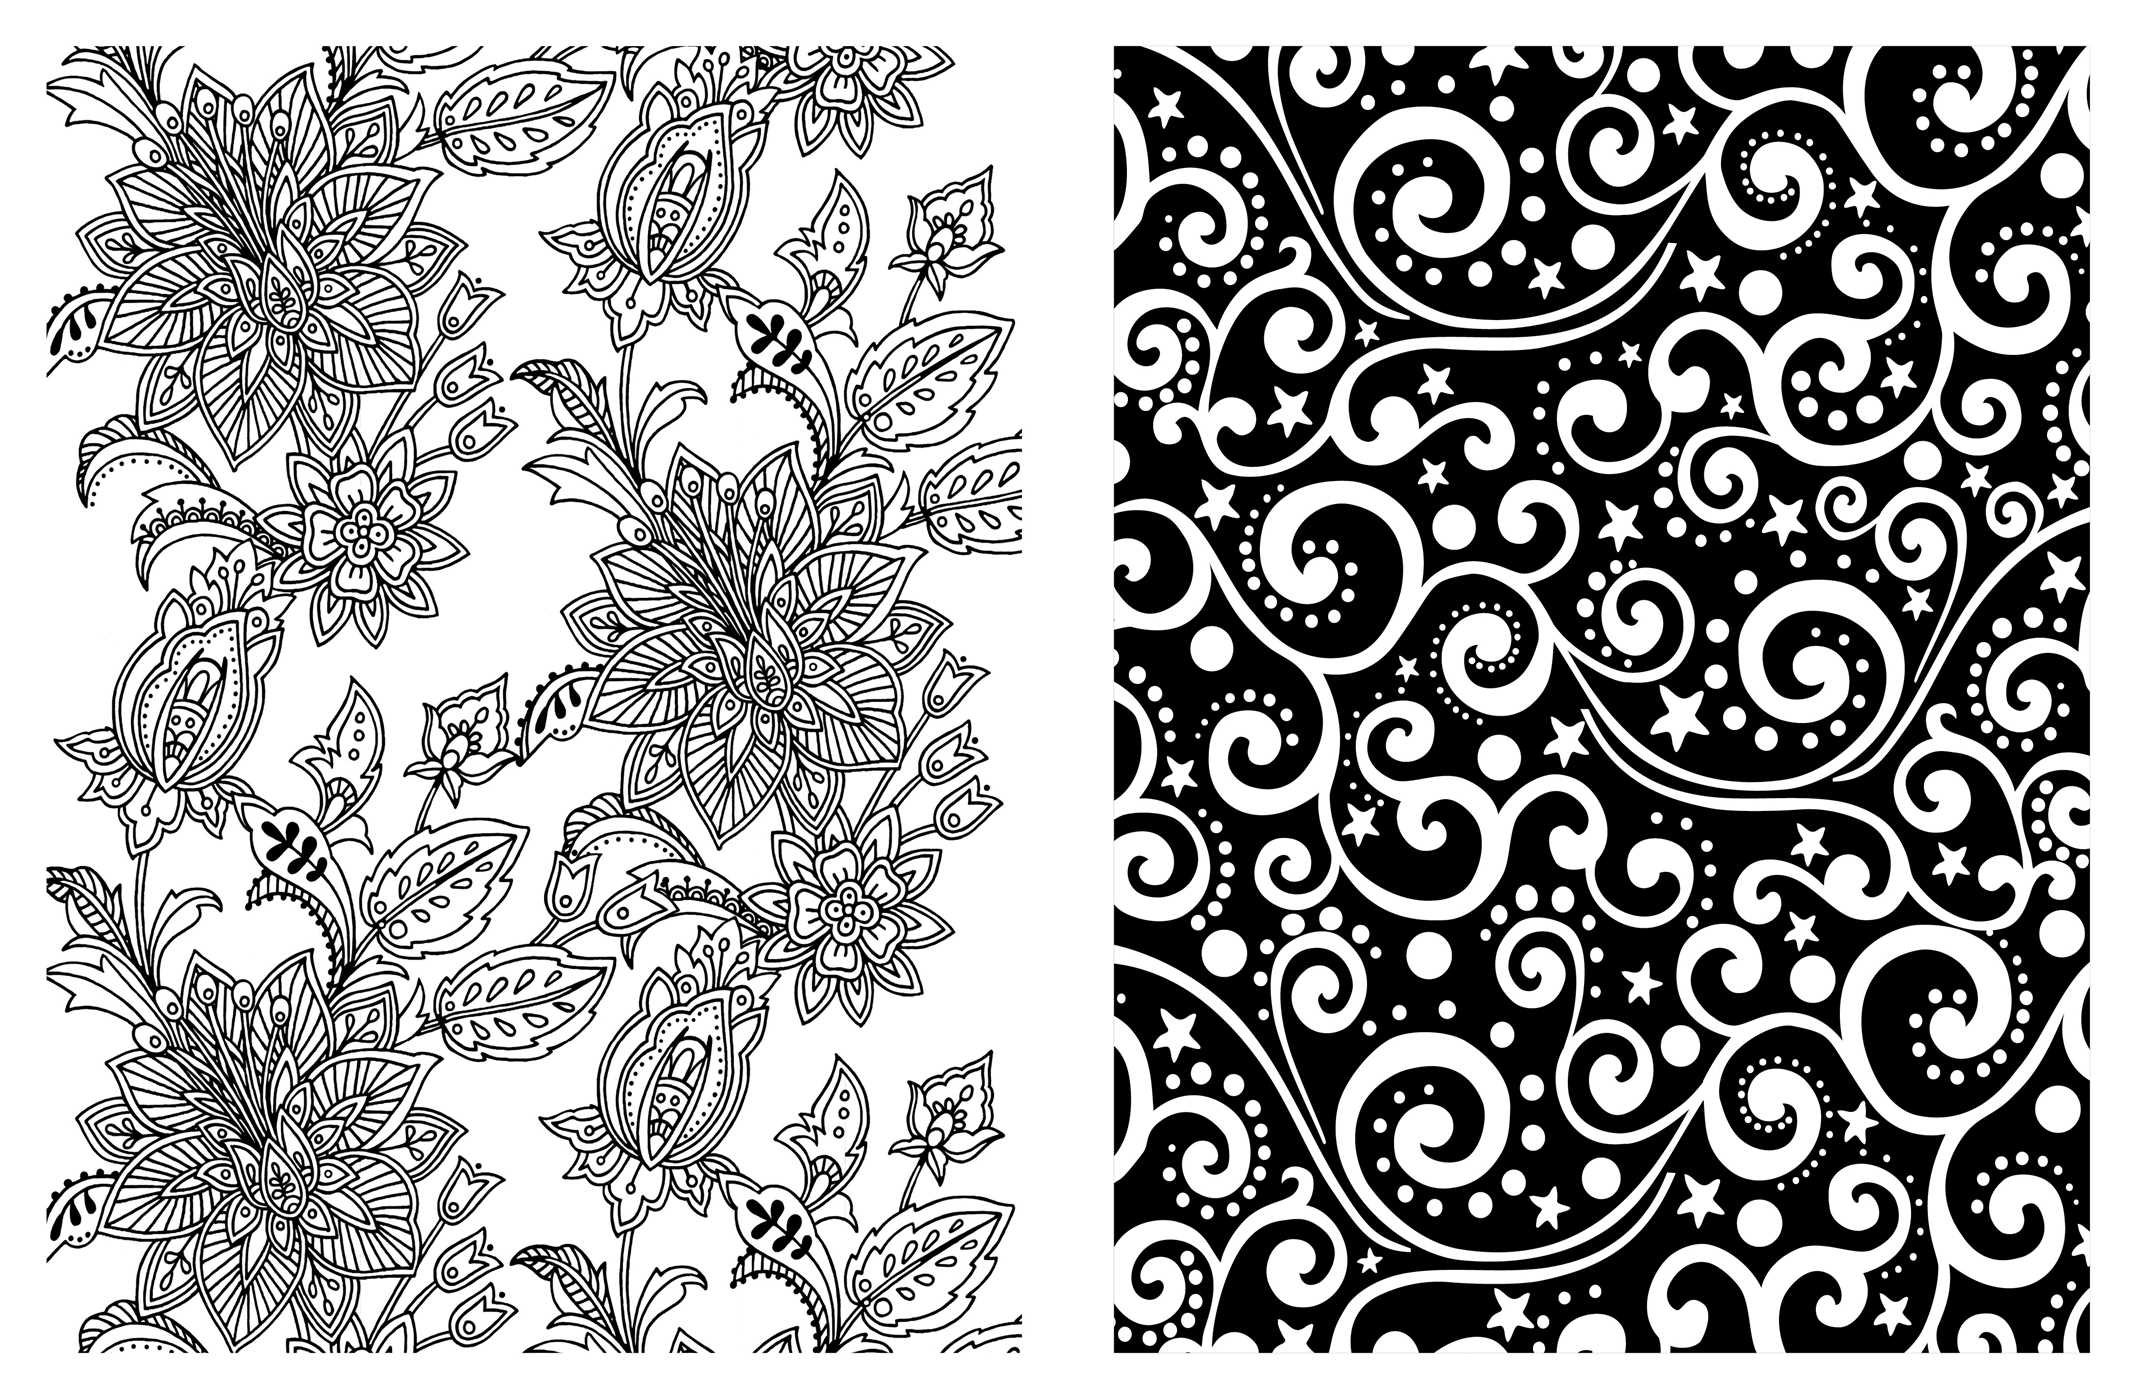 Amazon.com: Posh Adult Coloring Book: Soothing Designs for Fun ...